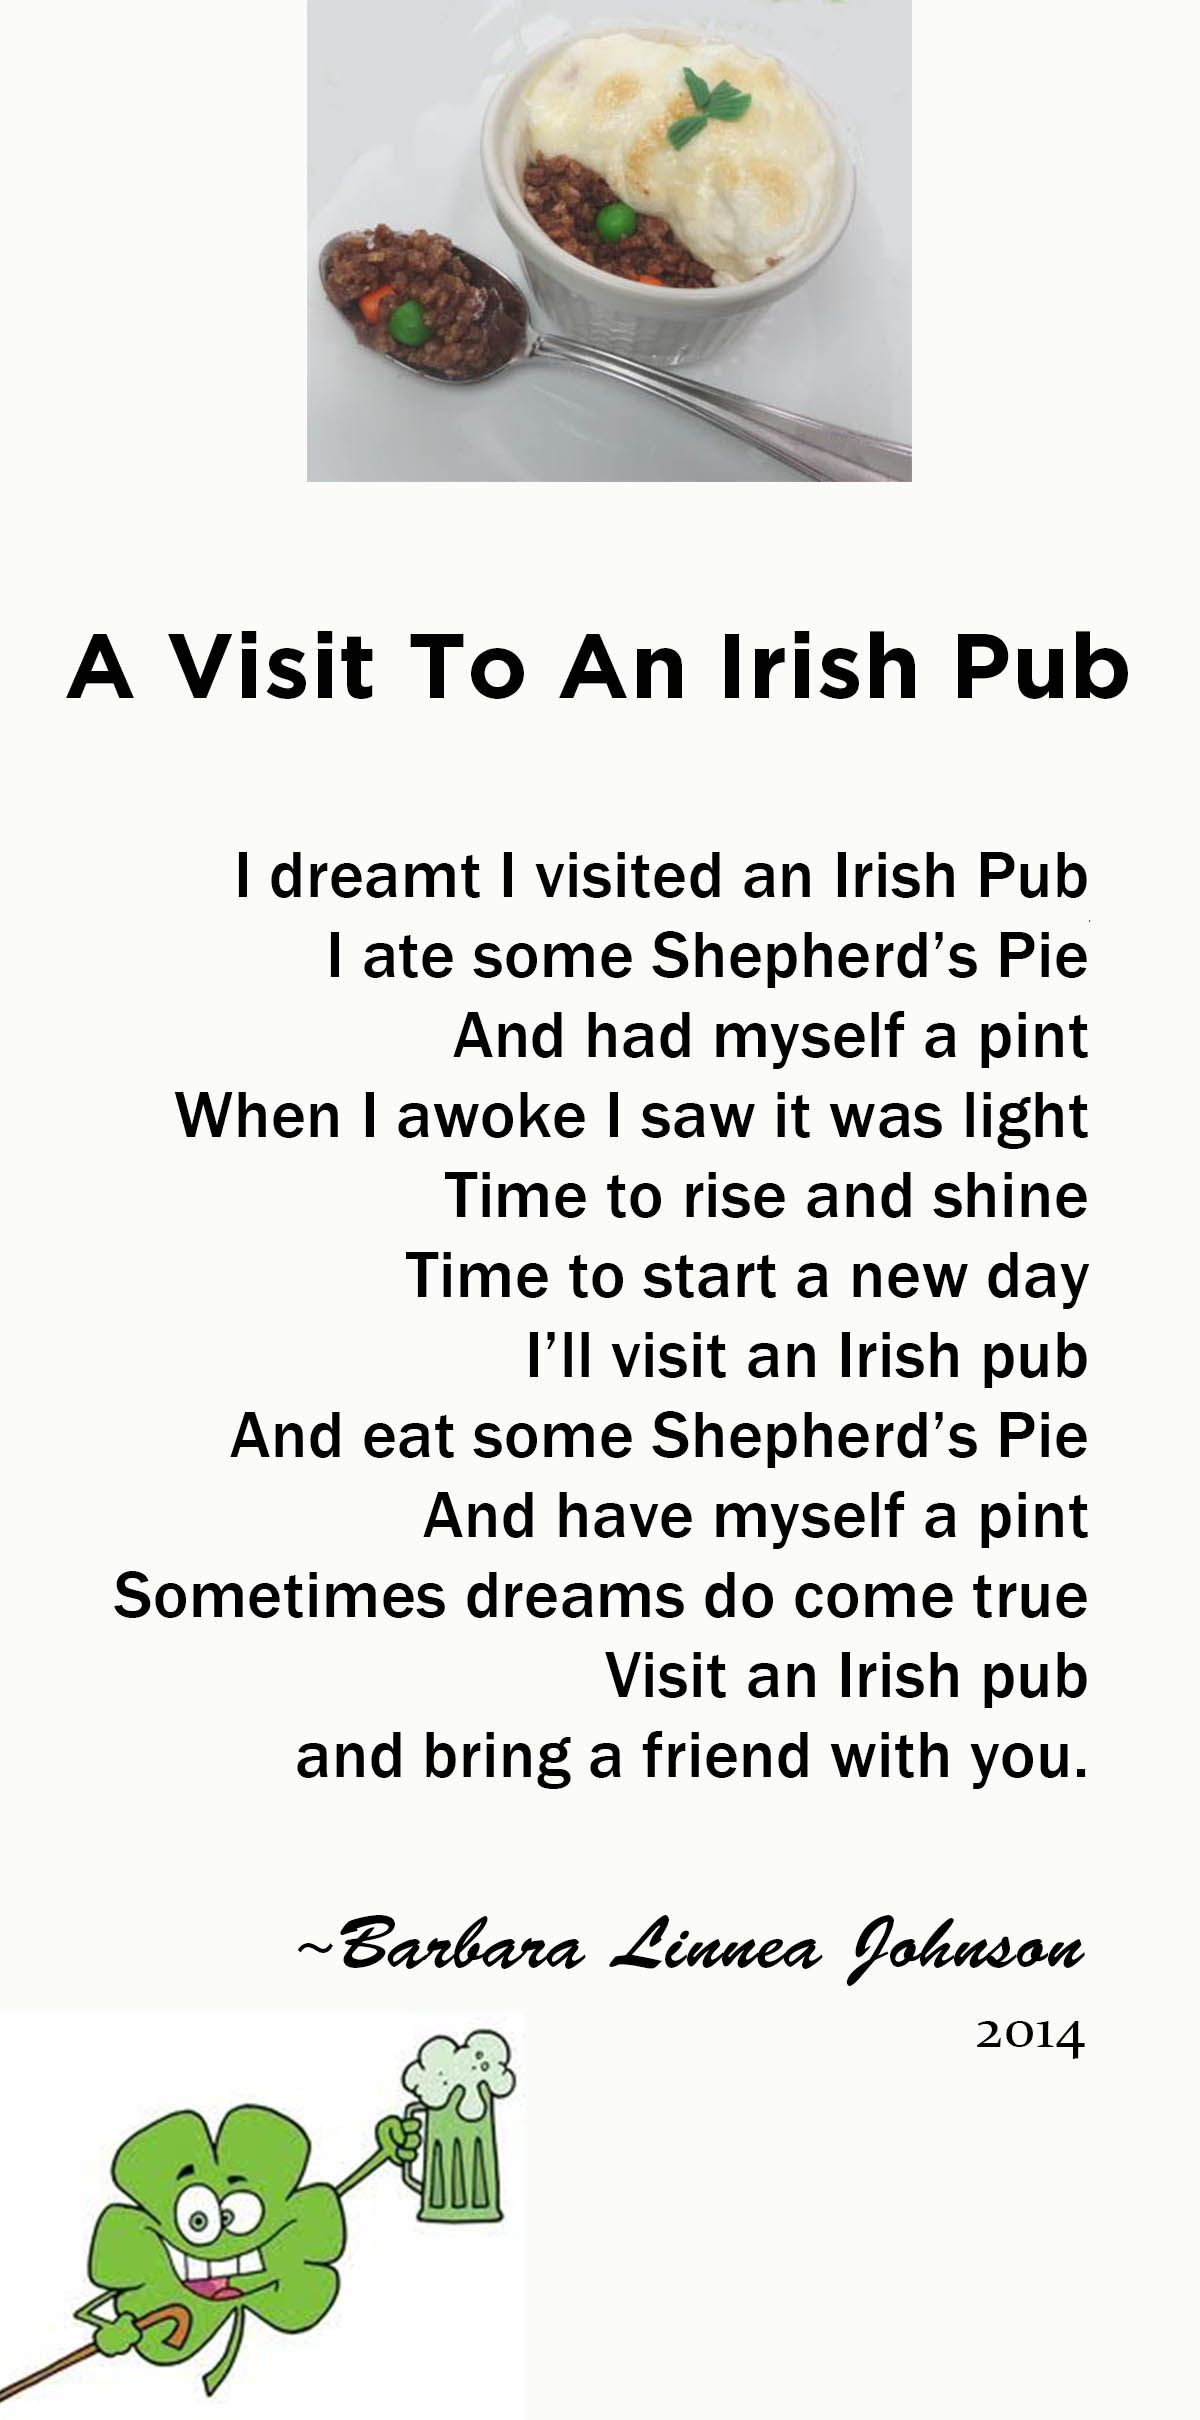 a visit to an irish pub an original poem by barbara linnea